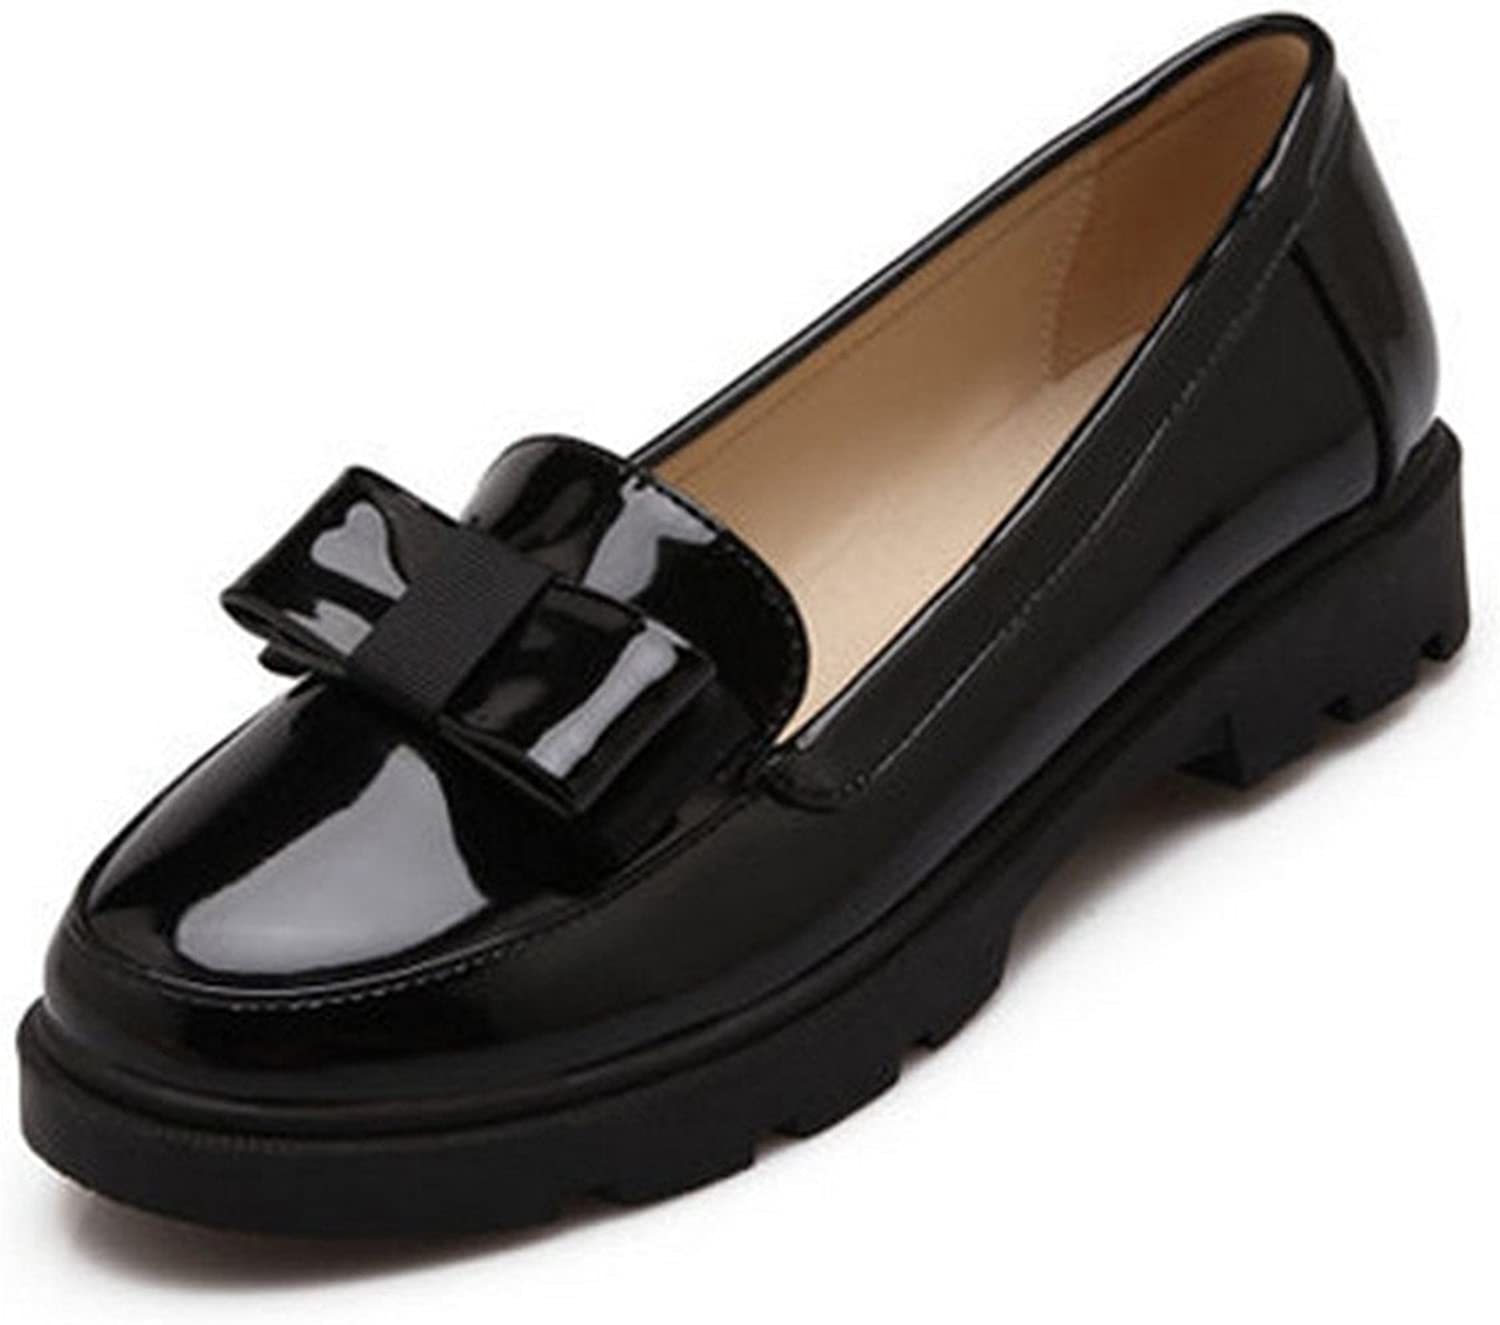 Orcan bluece Sweet Bow Patent Women Slip-on Casual Flat shoes Round Toe Loafers shoes